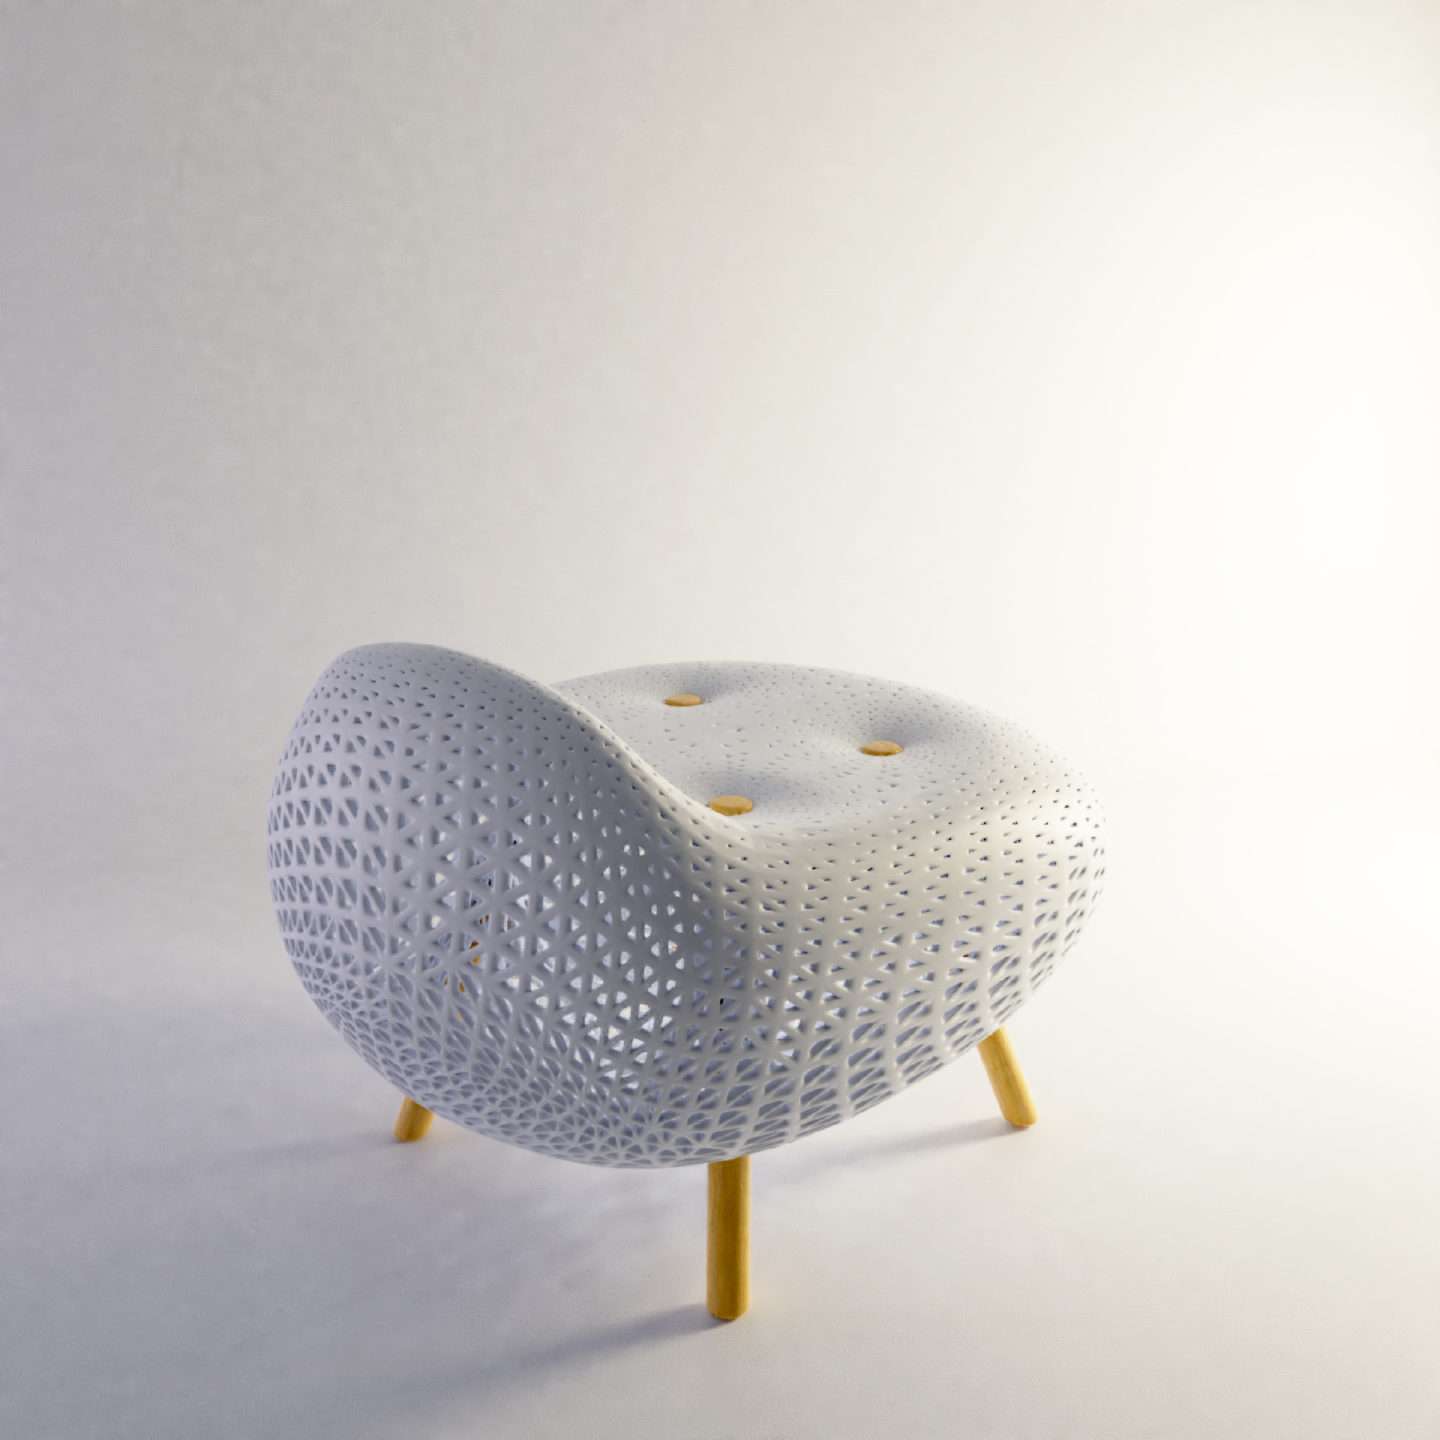 Intricately patterned chair on white backdrop